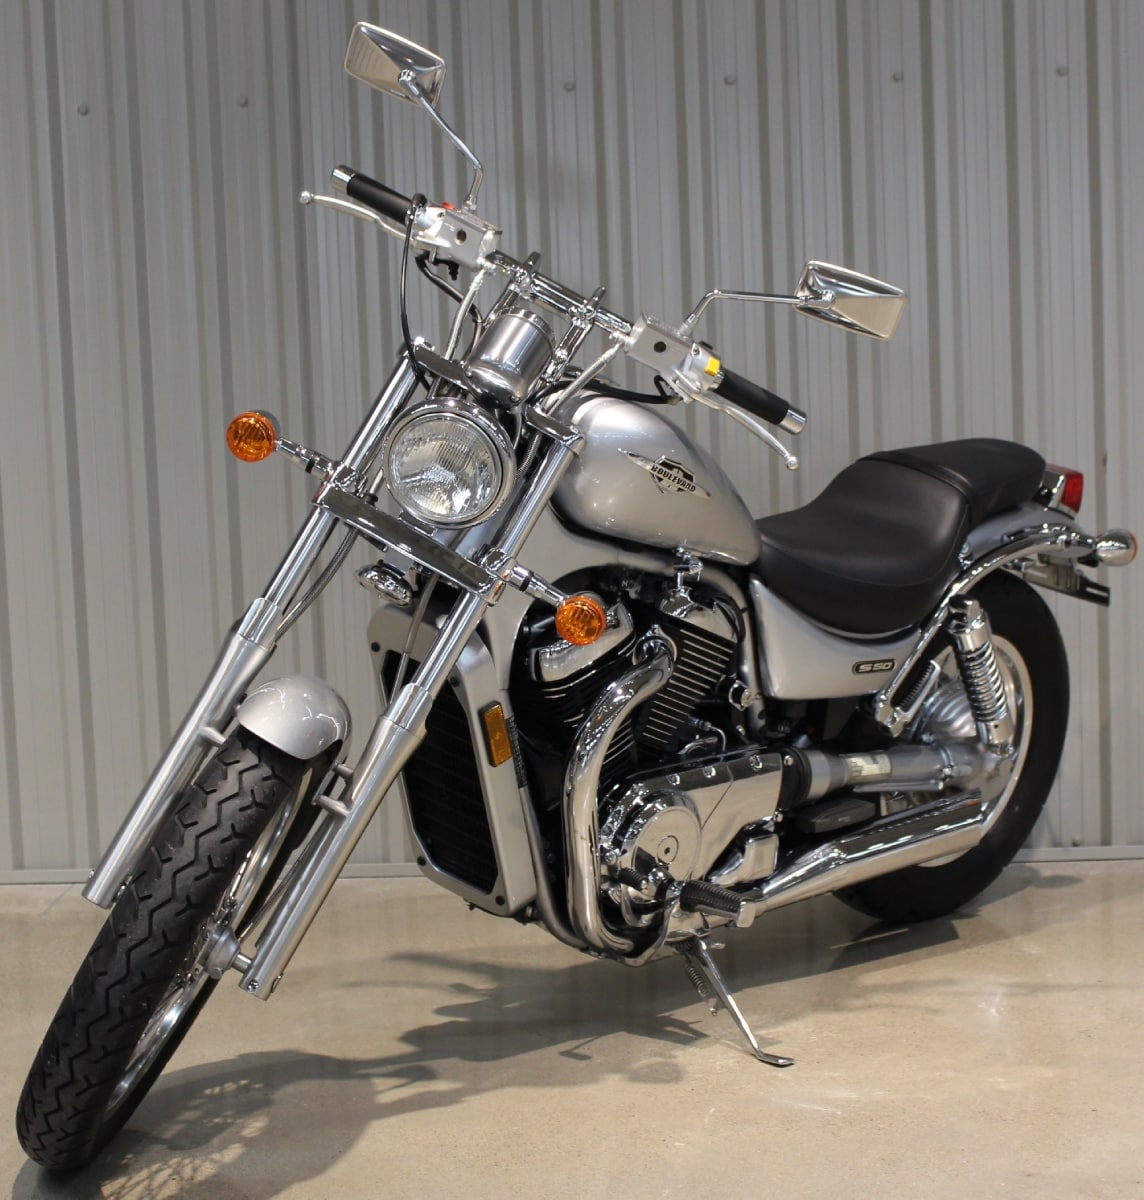 hight resolution of 2005 suzuki intruder 1400 wiring diagram suzuki auto 2001 suzuki intruder 1400 specifications 1995 suzuki intruder